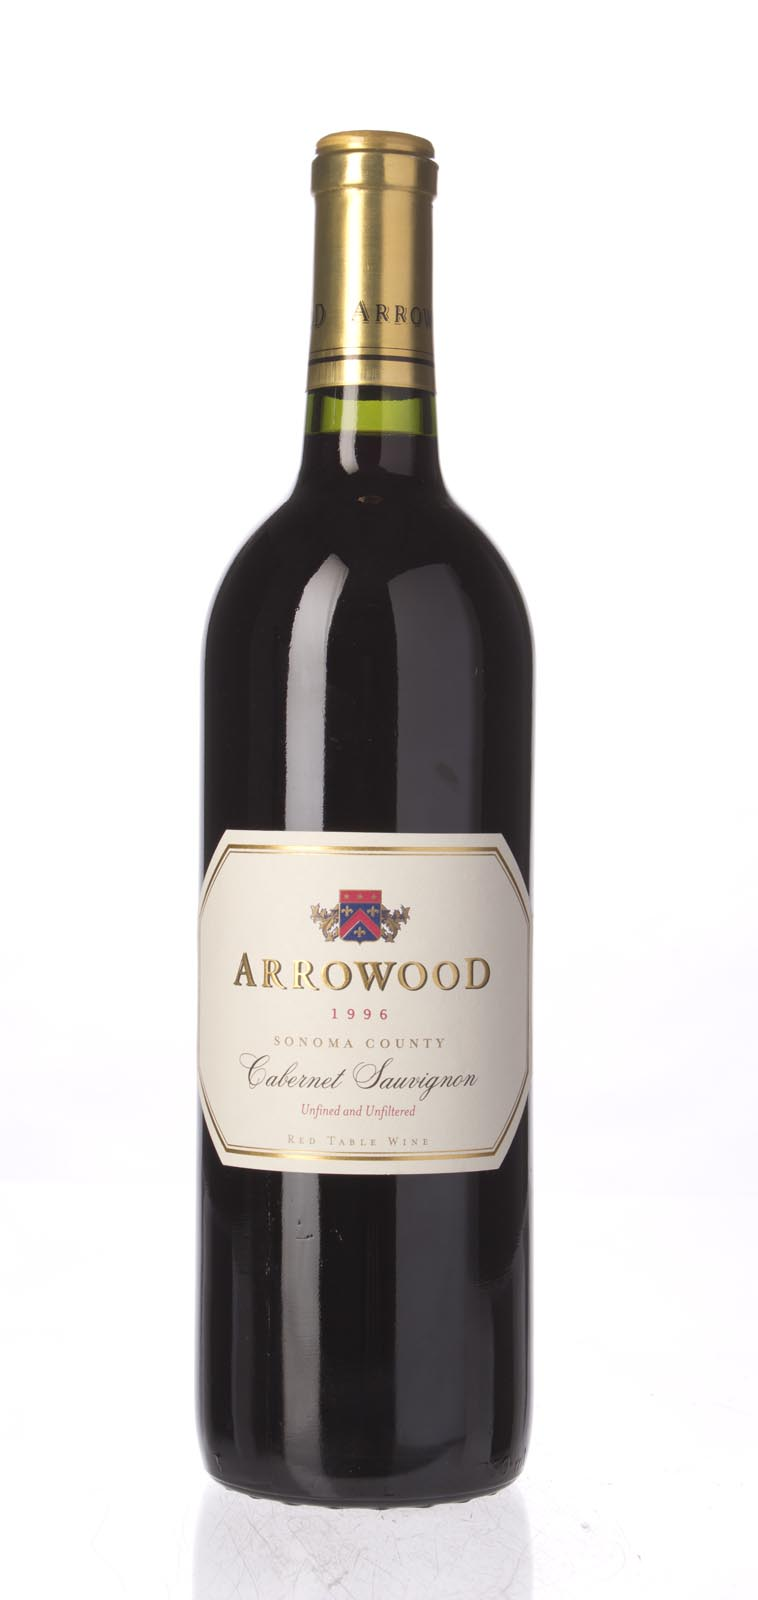 Arrowood Cabernet Sauvignon Sonoma County 1996, 750mL (WA89) from The BPW - Merchants of rare and fine wines.